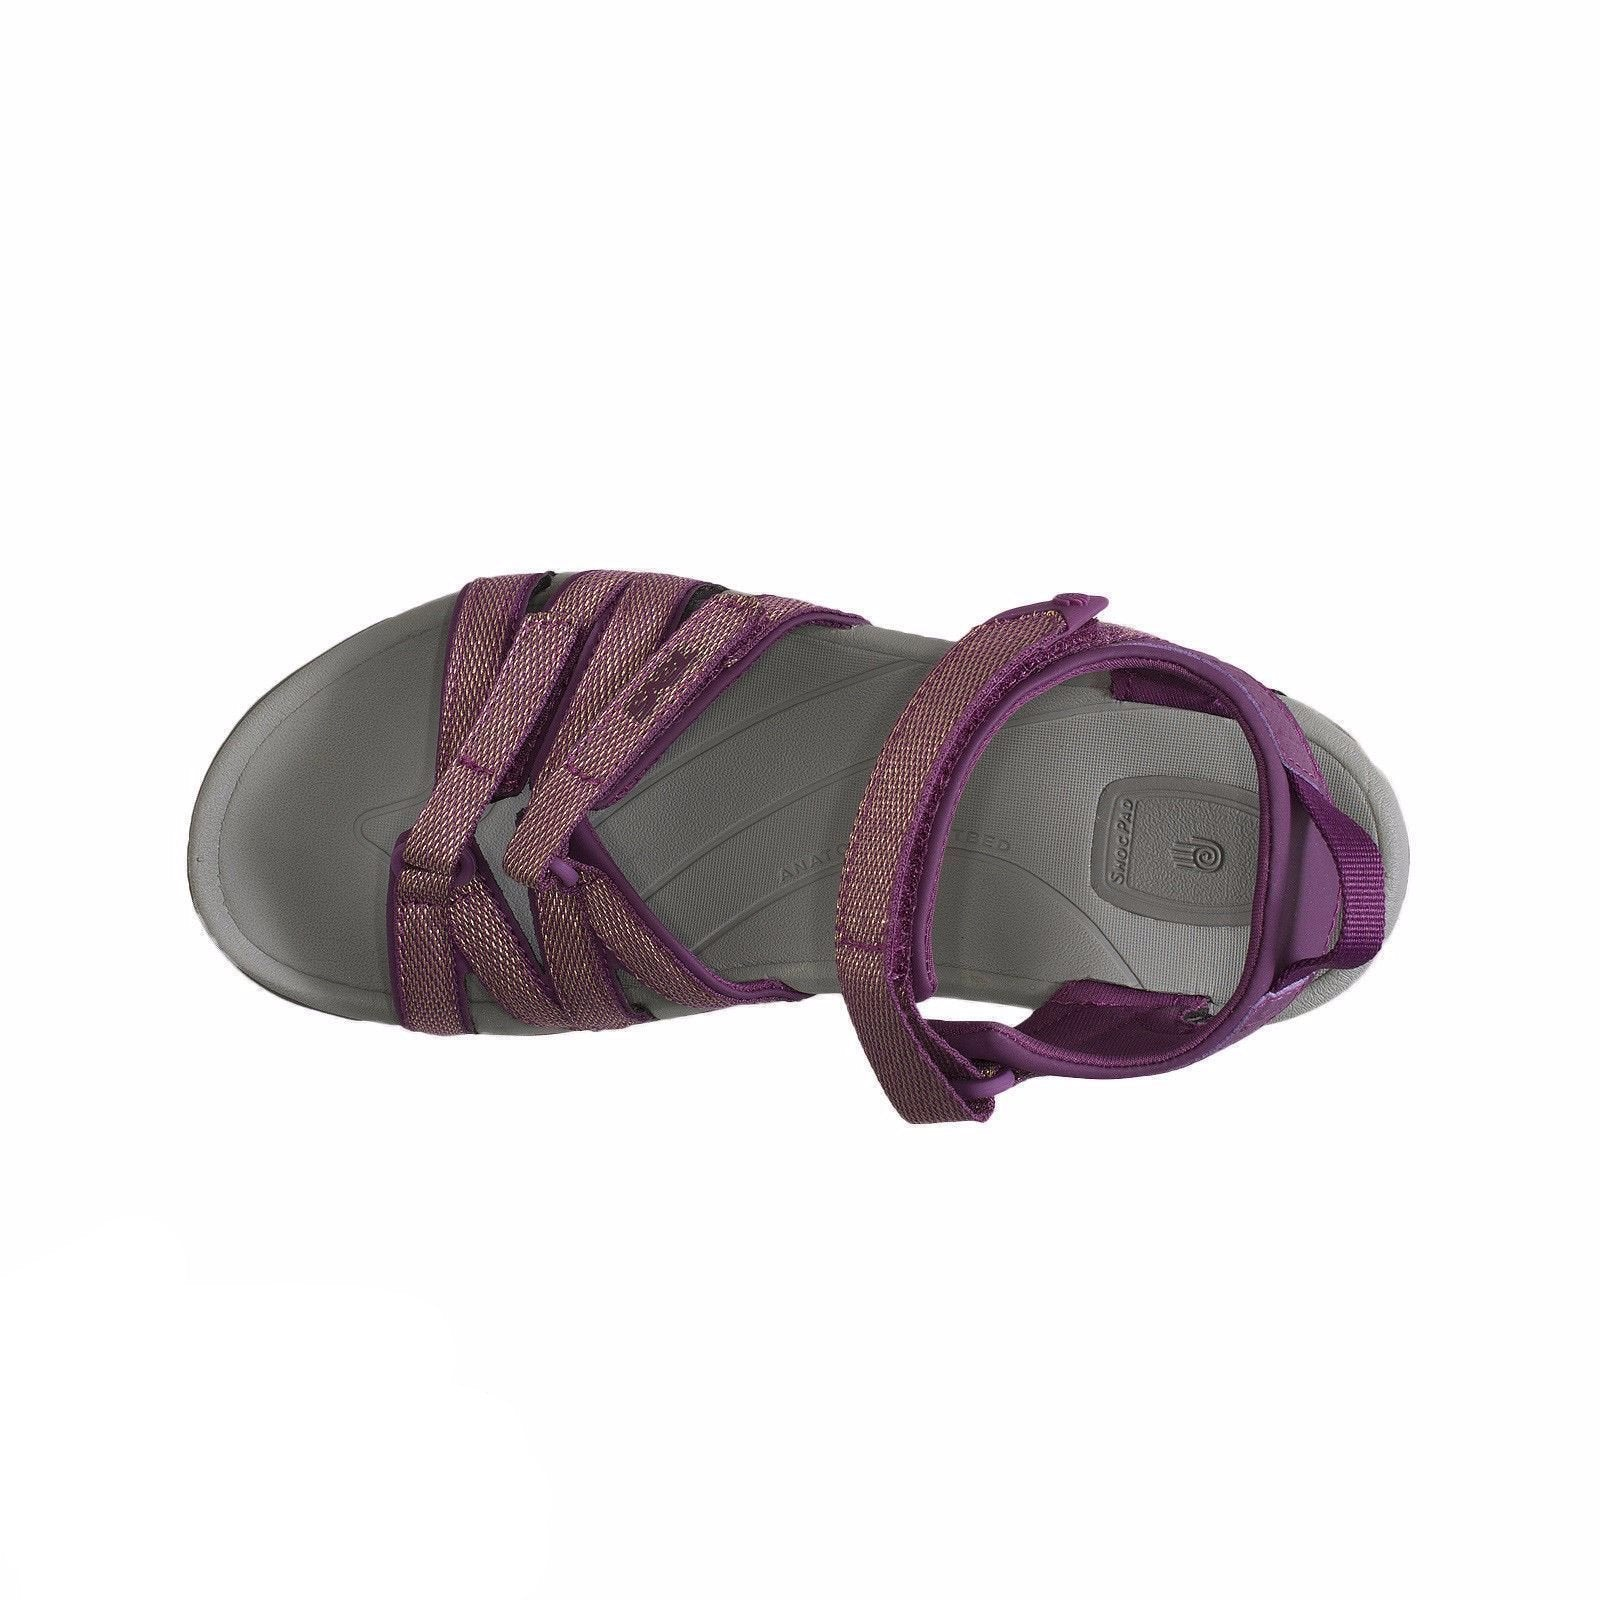 43e8b0822f27 Teva Tirra Zaca Dark Purple Gold Sandals - MyCozyBoots